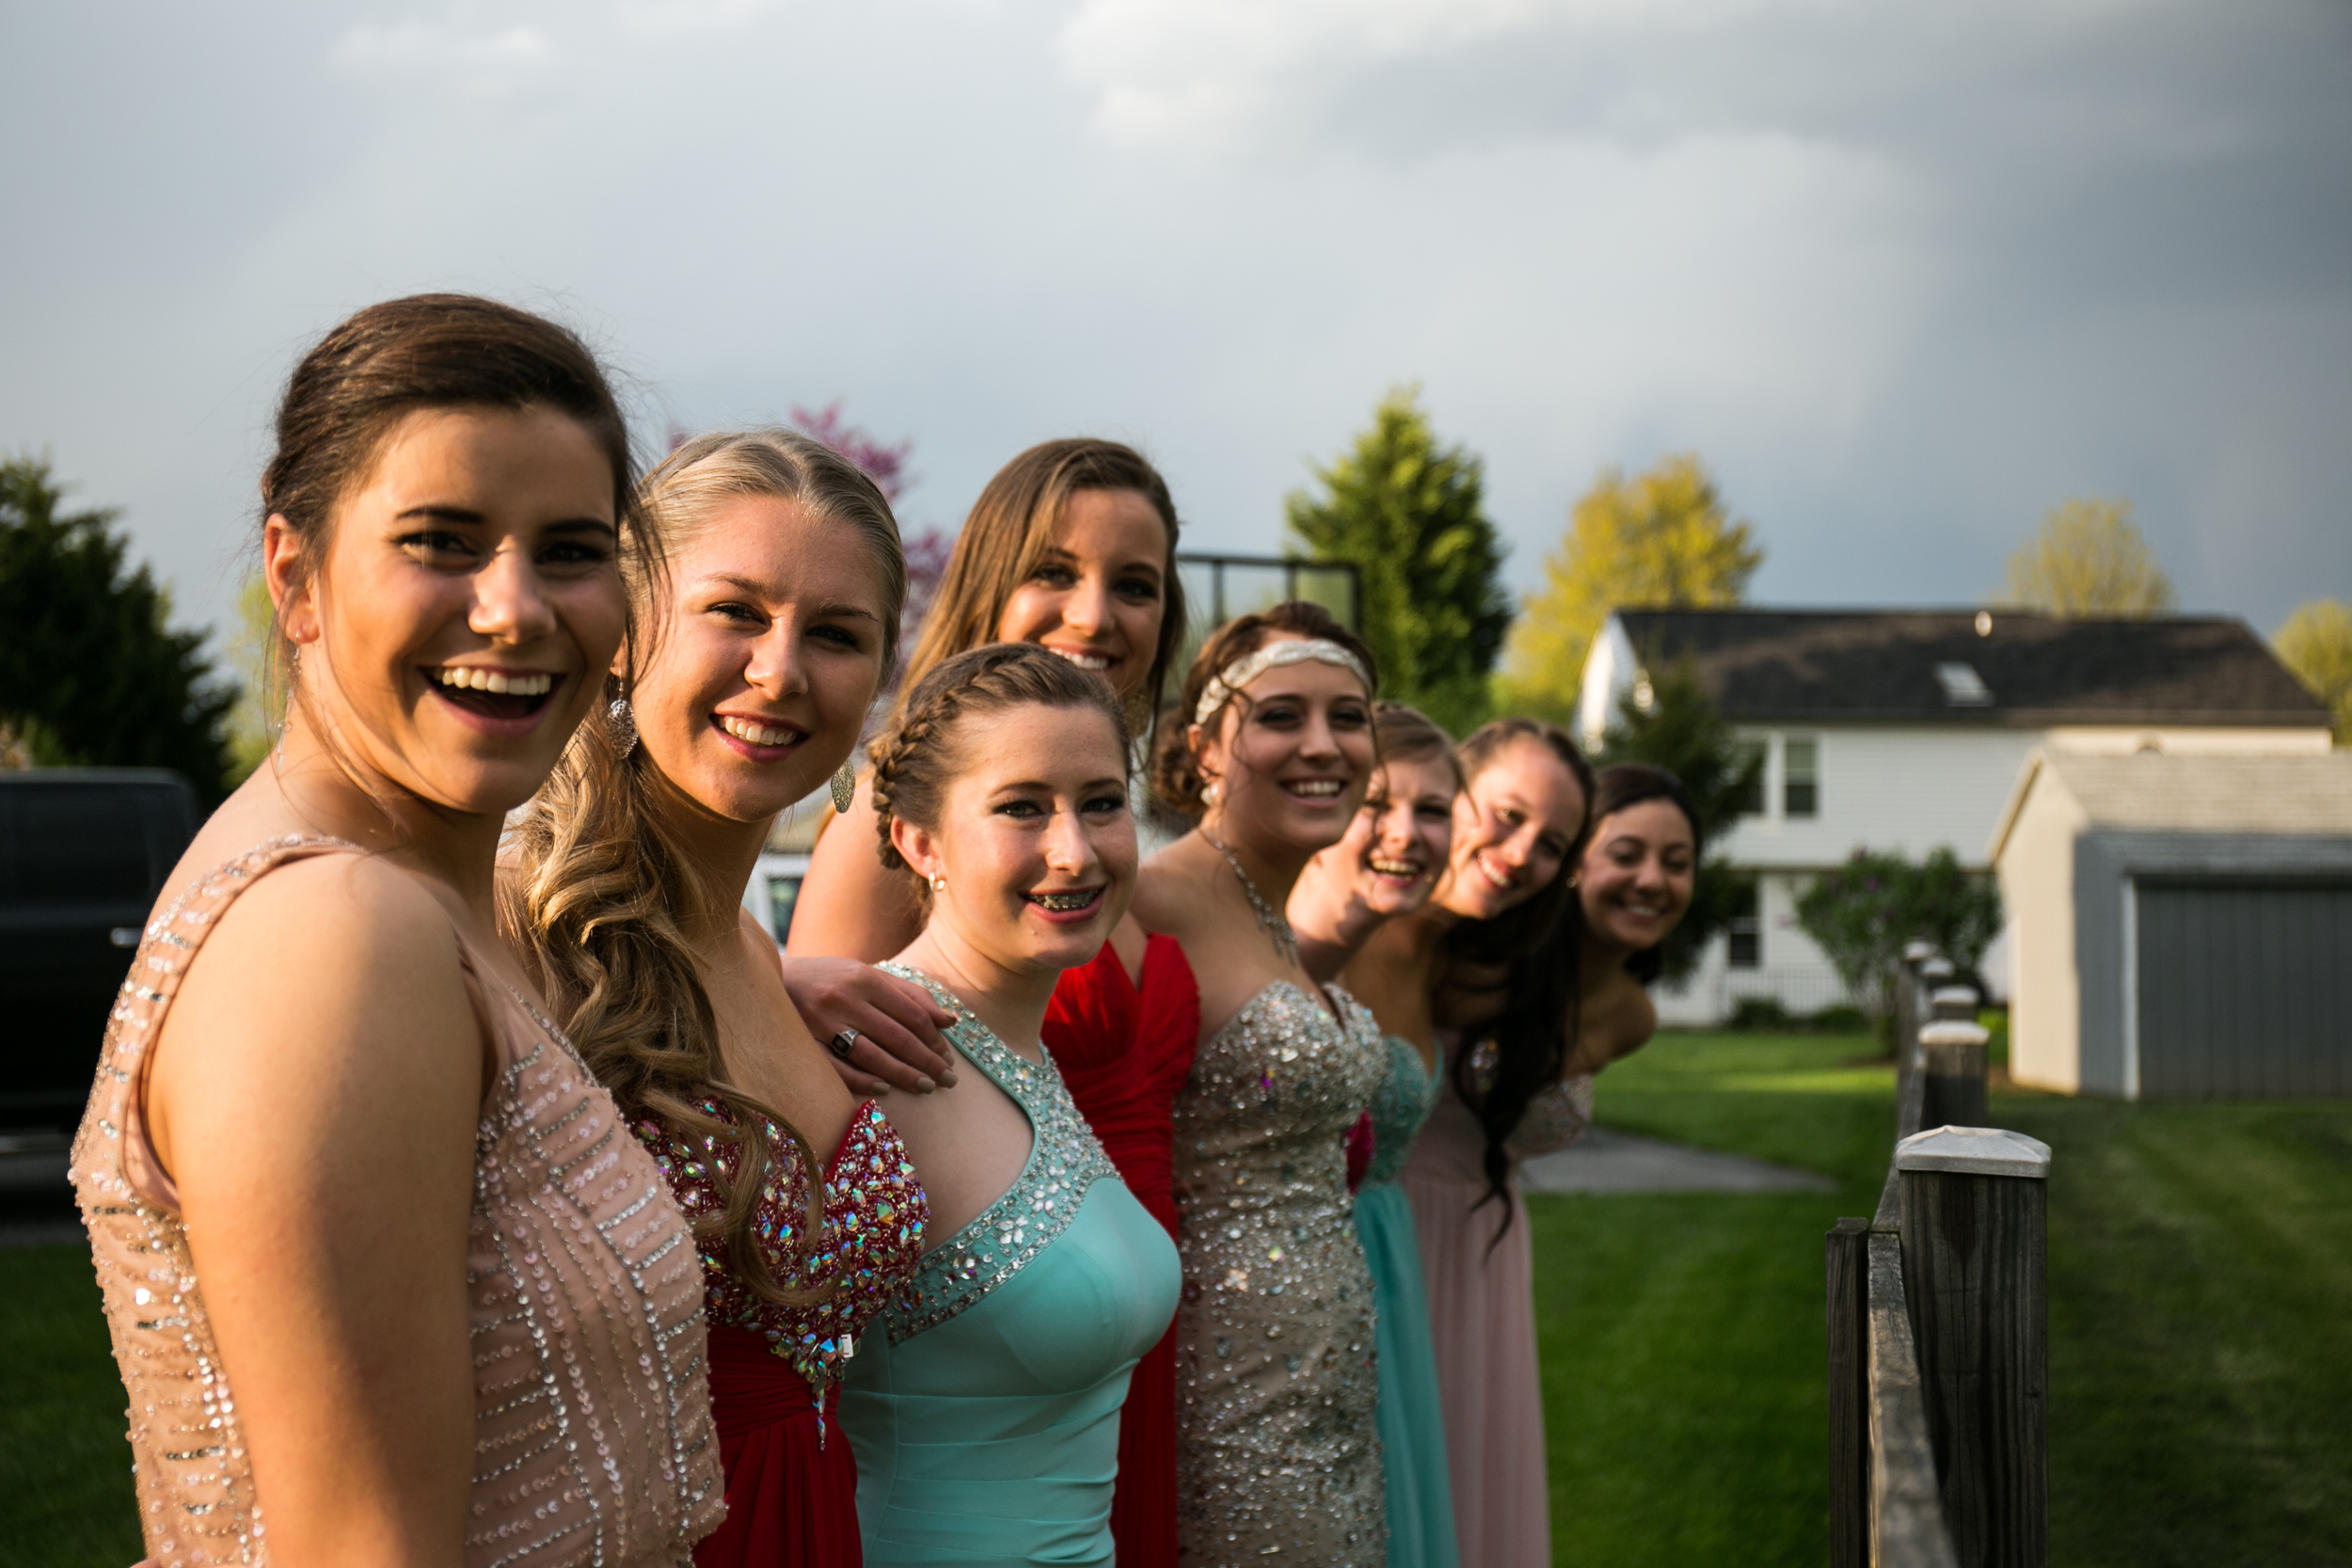 Mount-De-Sales-Pre-Prom-May-2014-22.jpg